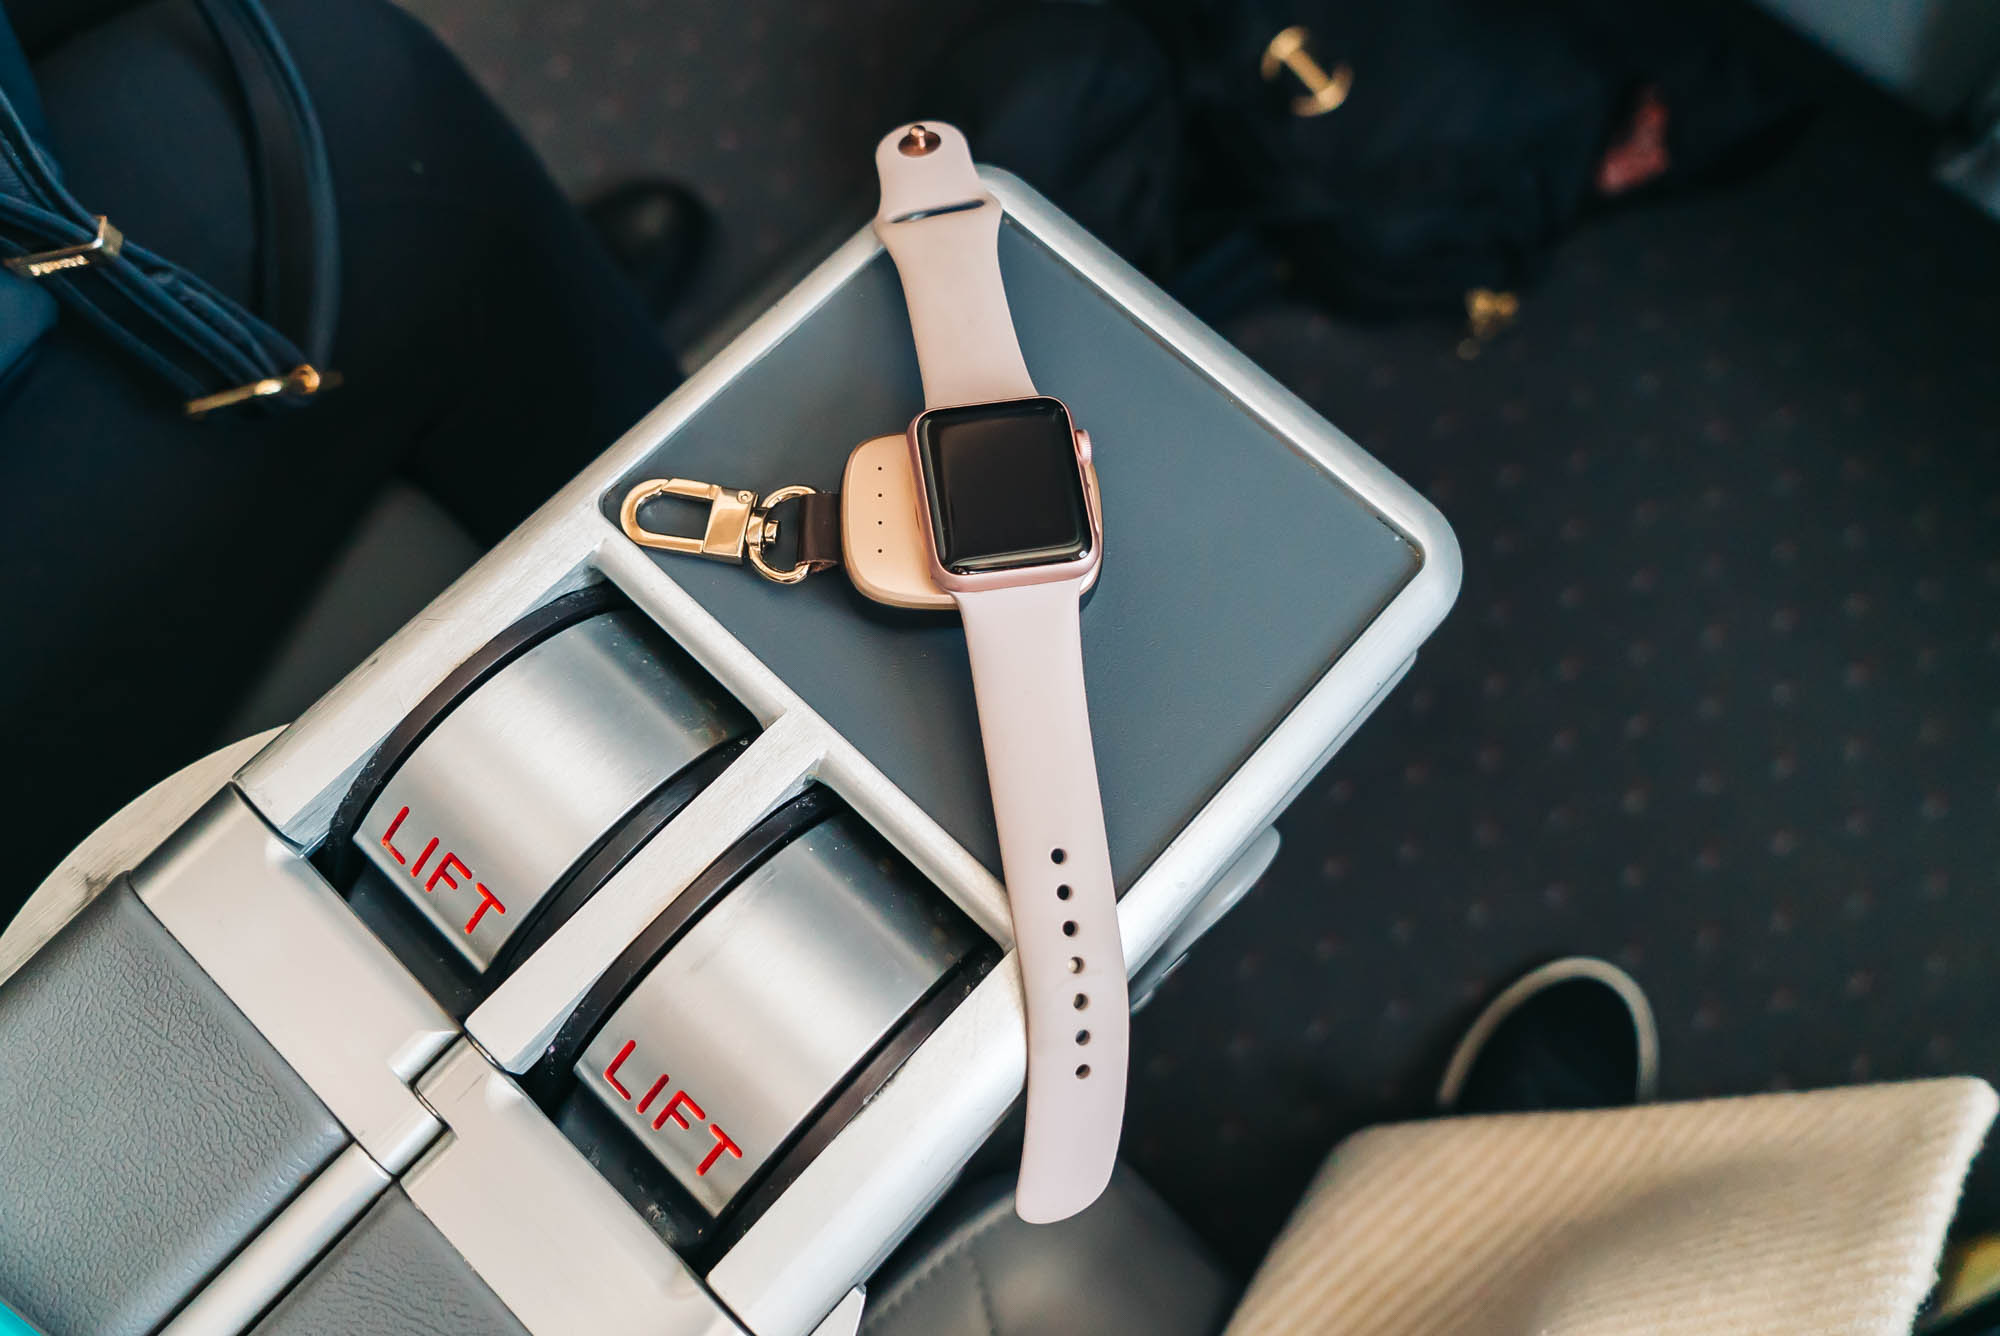 I use this portable Apple watch charger on the daily as well